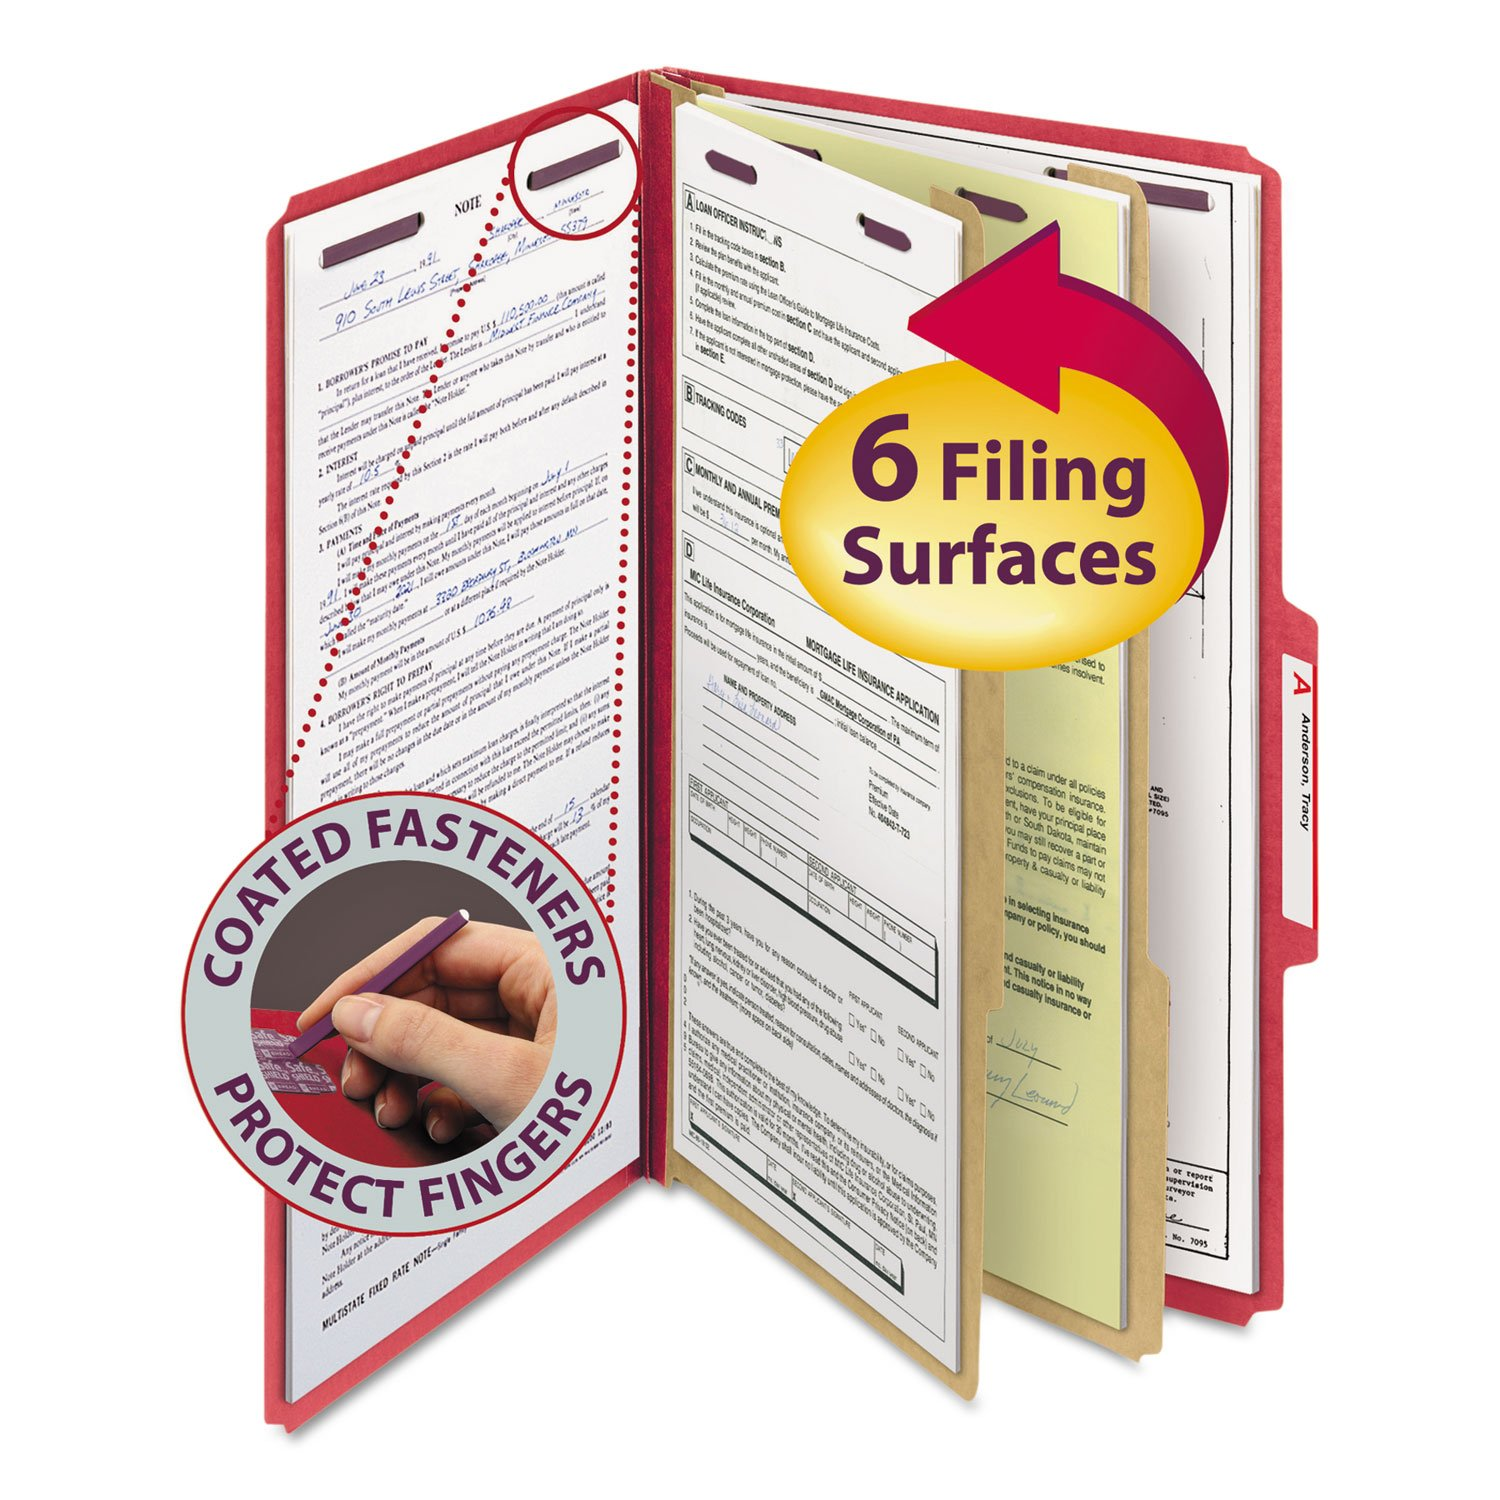 SMD19031 - Smead 19031 Bright Red Colored Pressboard Classification Folders with SafeSHIELD Fasteners by Smead